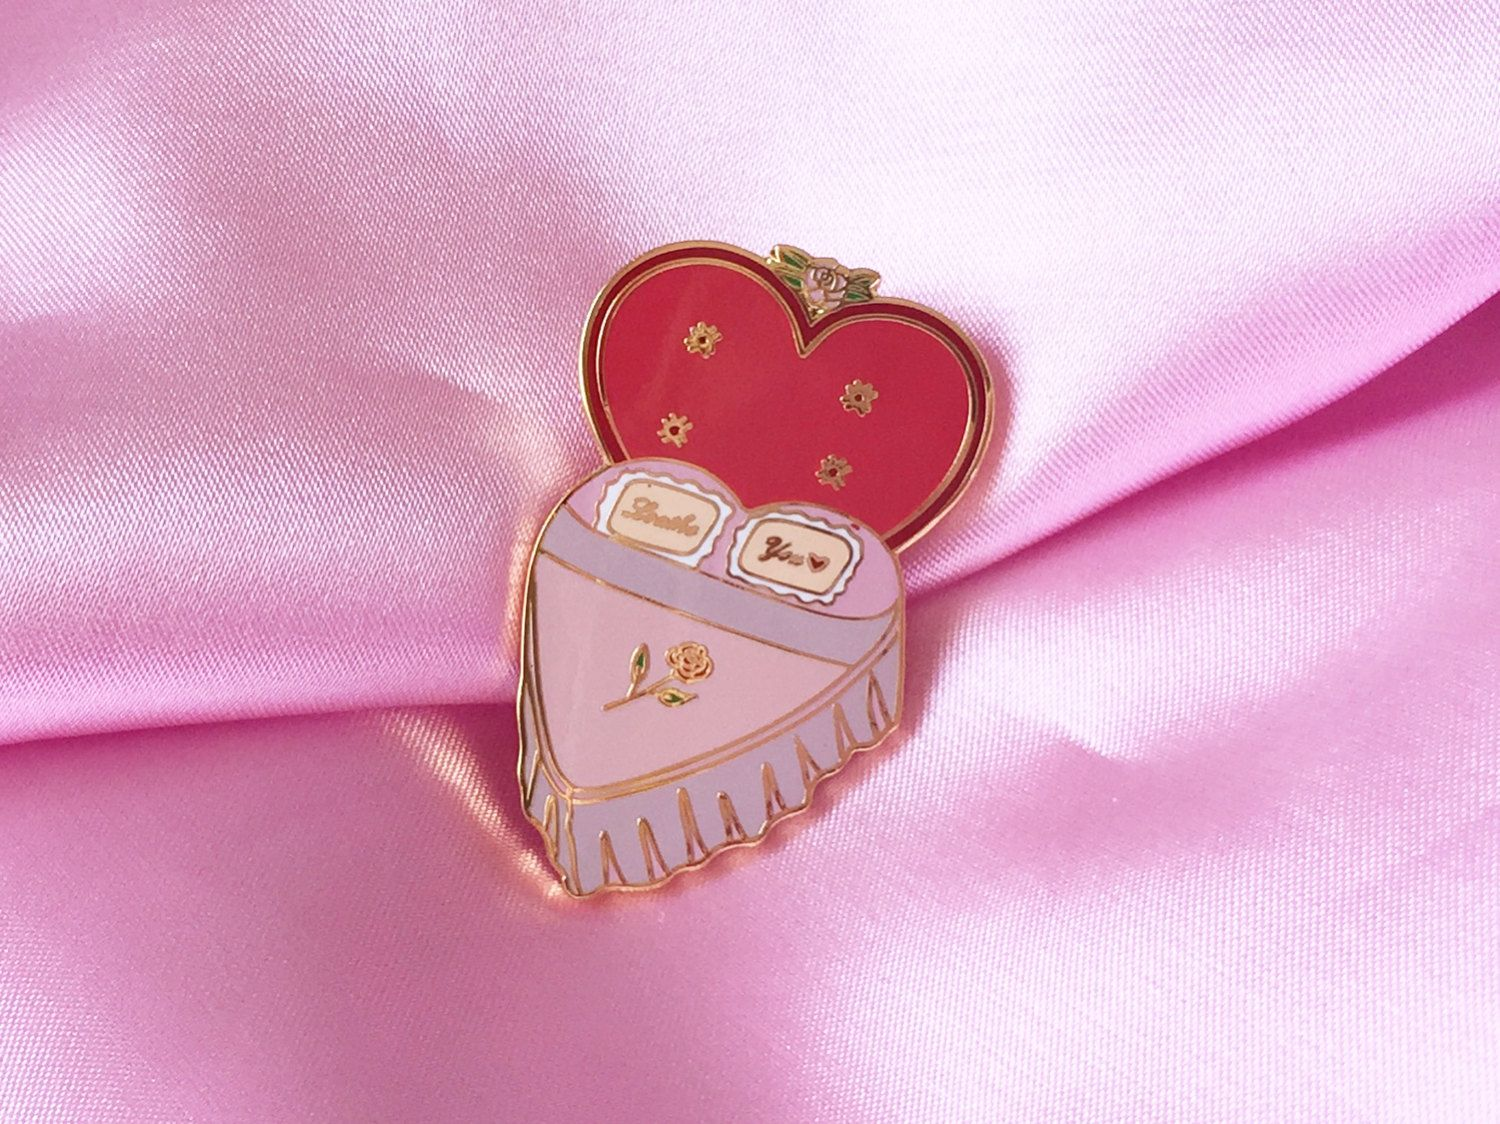 Loathe Motel Heart Shaped Bed 1 5 Enamel Lapel Pin Enamel Lapel Pin Heart Shapes Backpack Pins